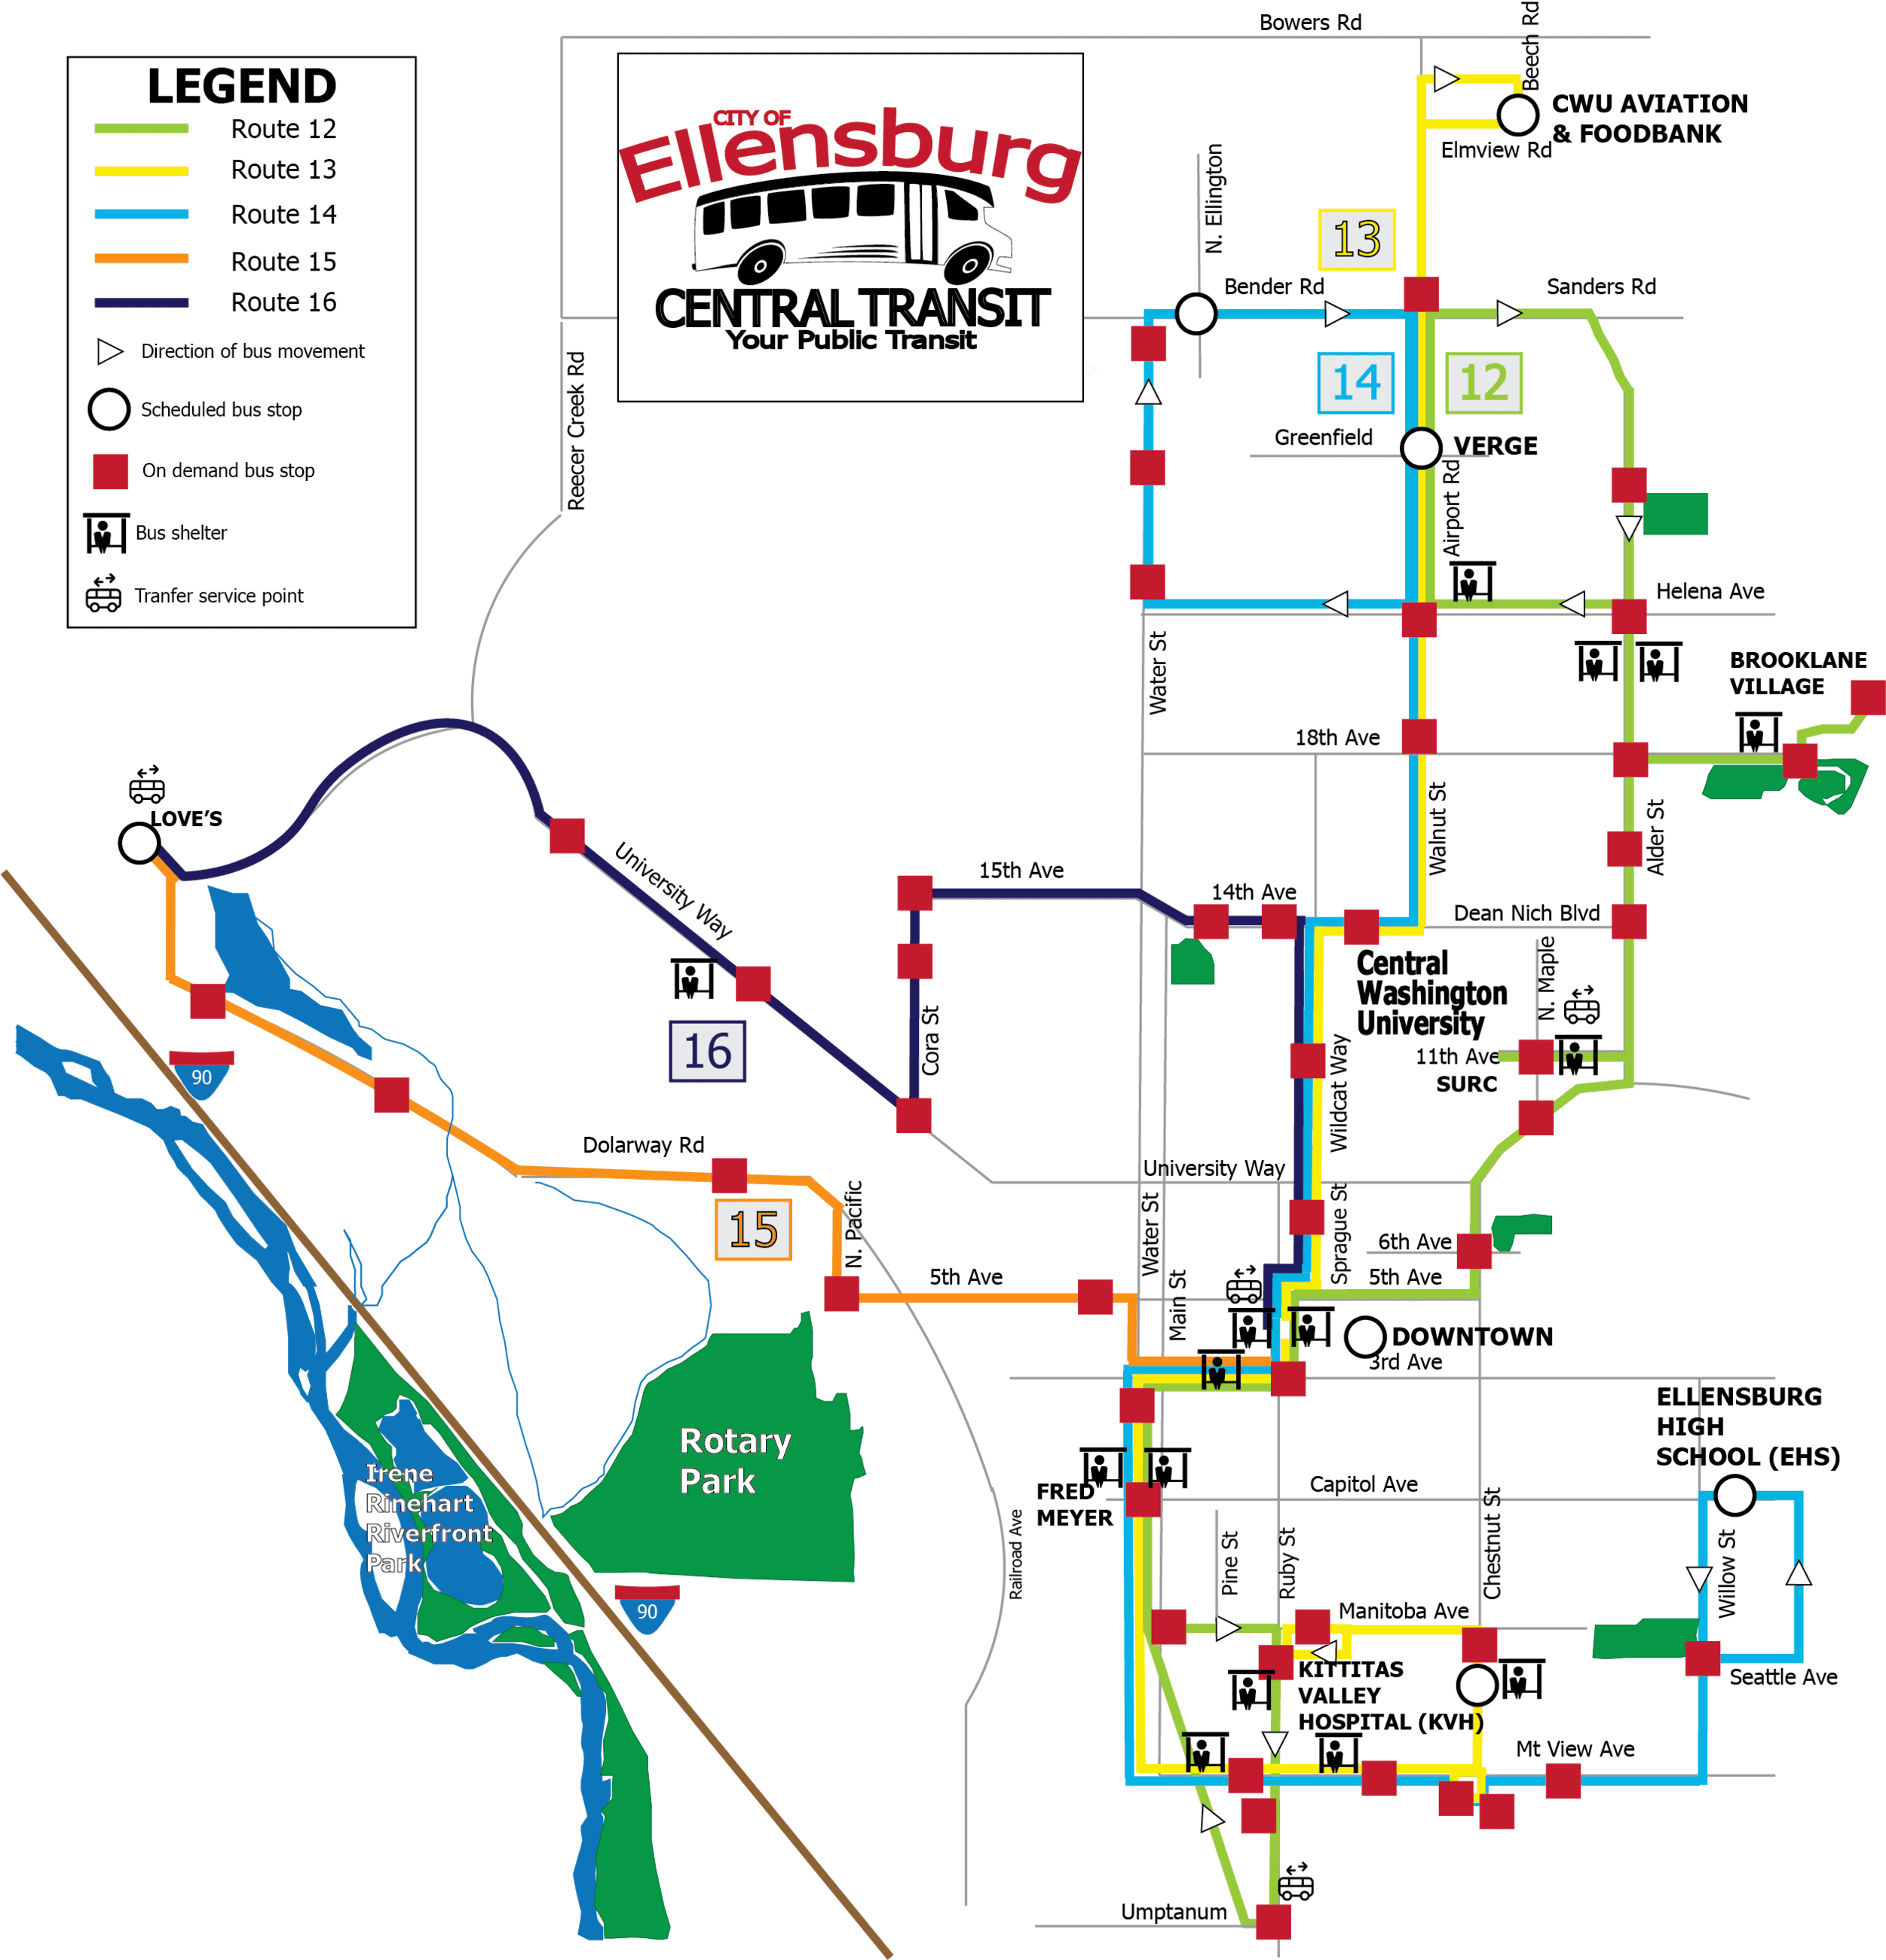 Ellensburg_Route_Update_system_map_8-27-19_no_logo